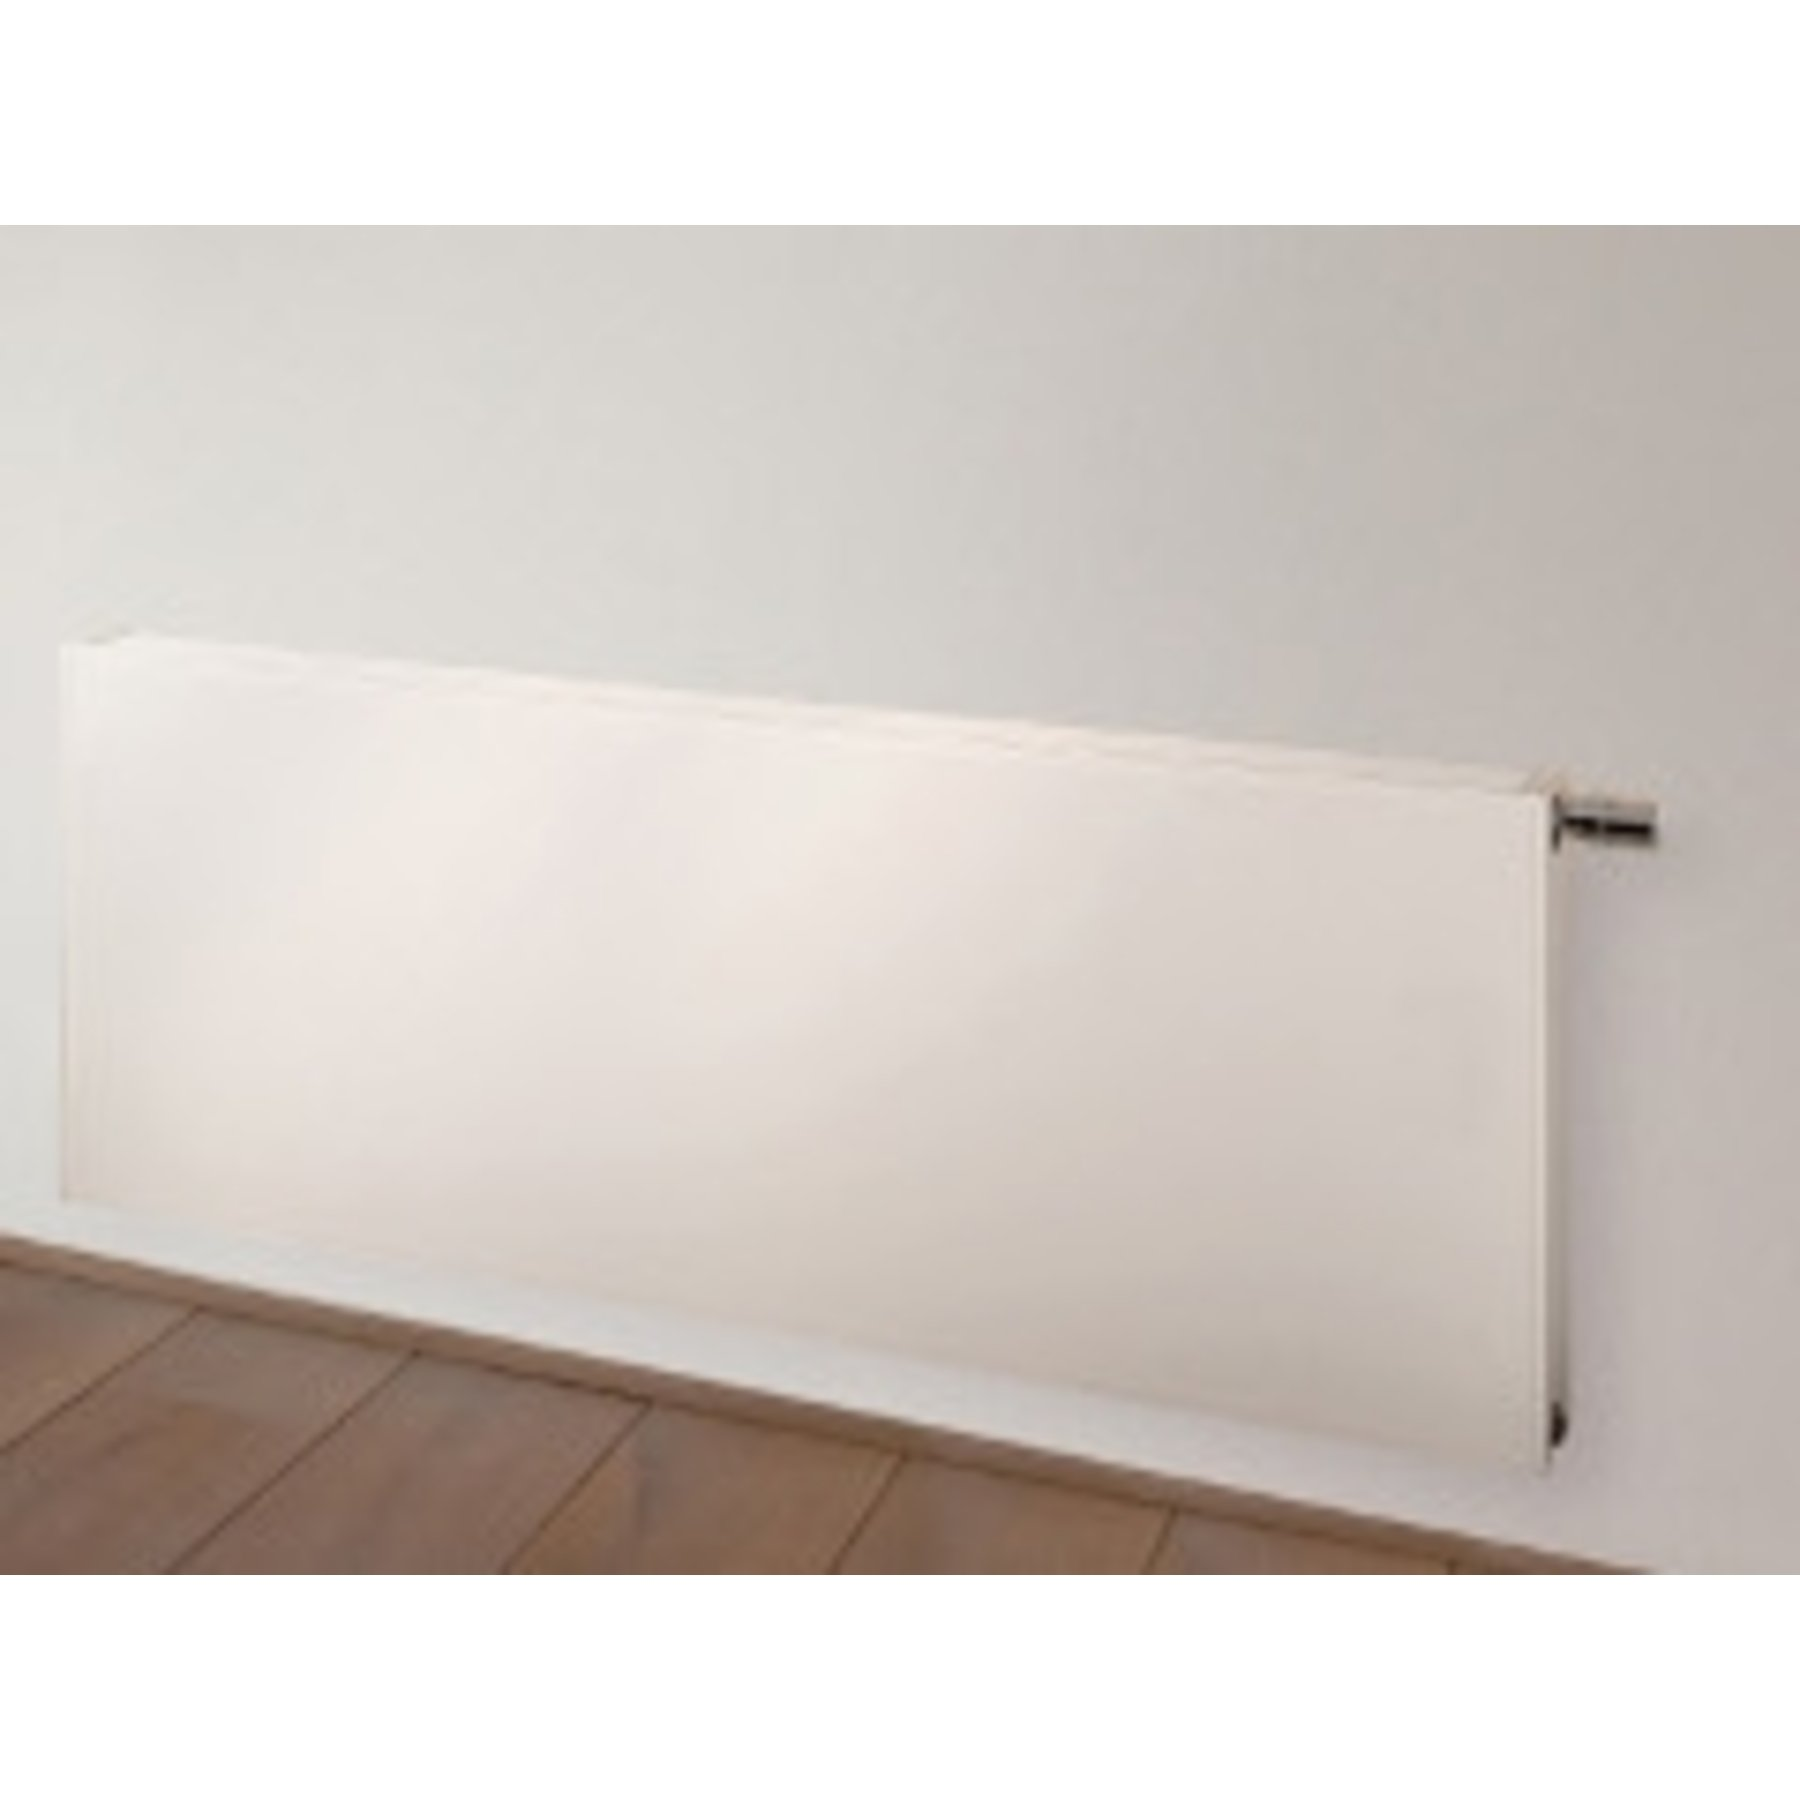 Vasco Flatline Paneelradiator type 21 400x1400mm 1280 watt vlak wit structuur (S600)